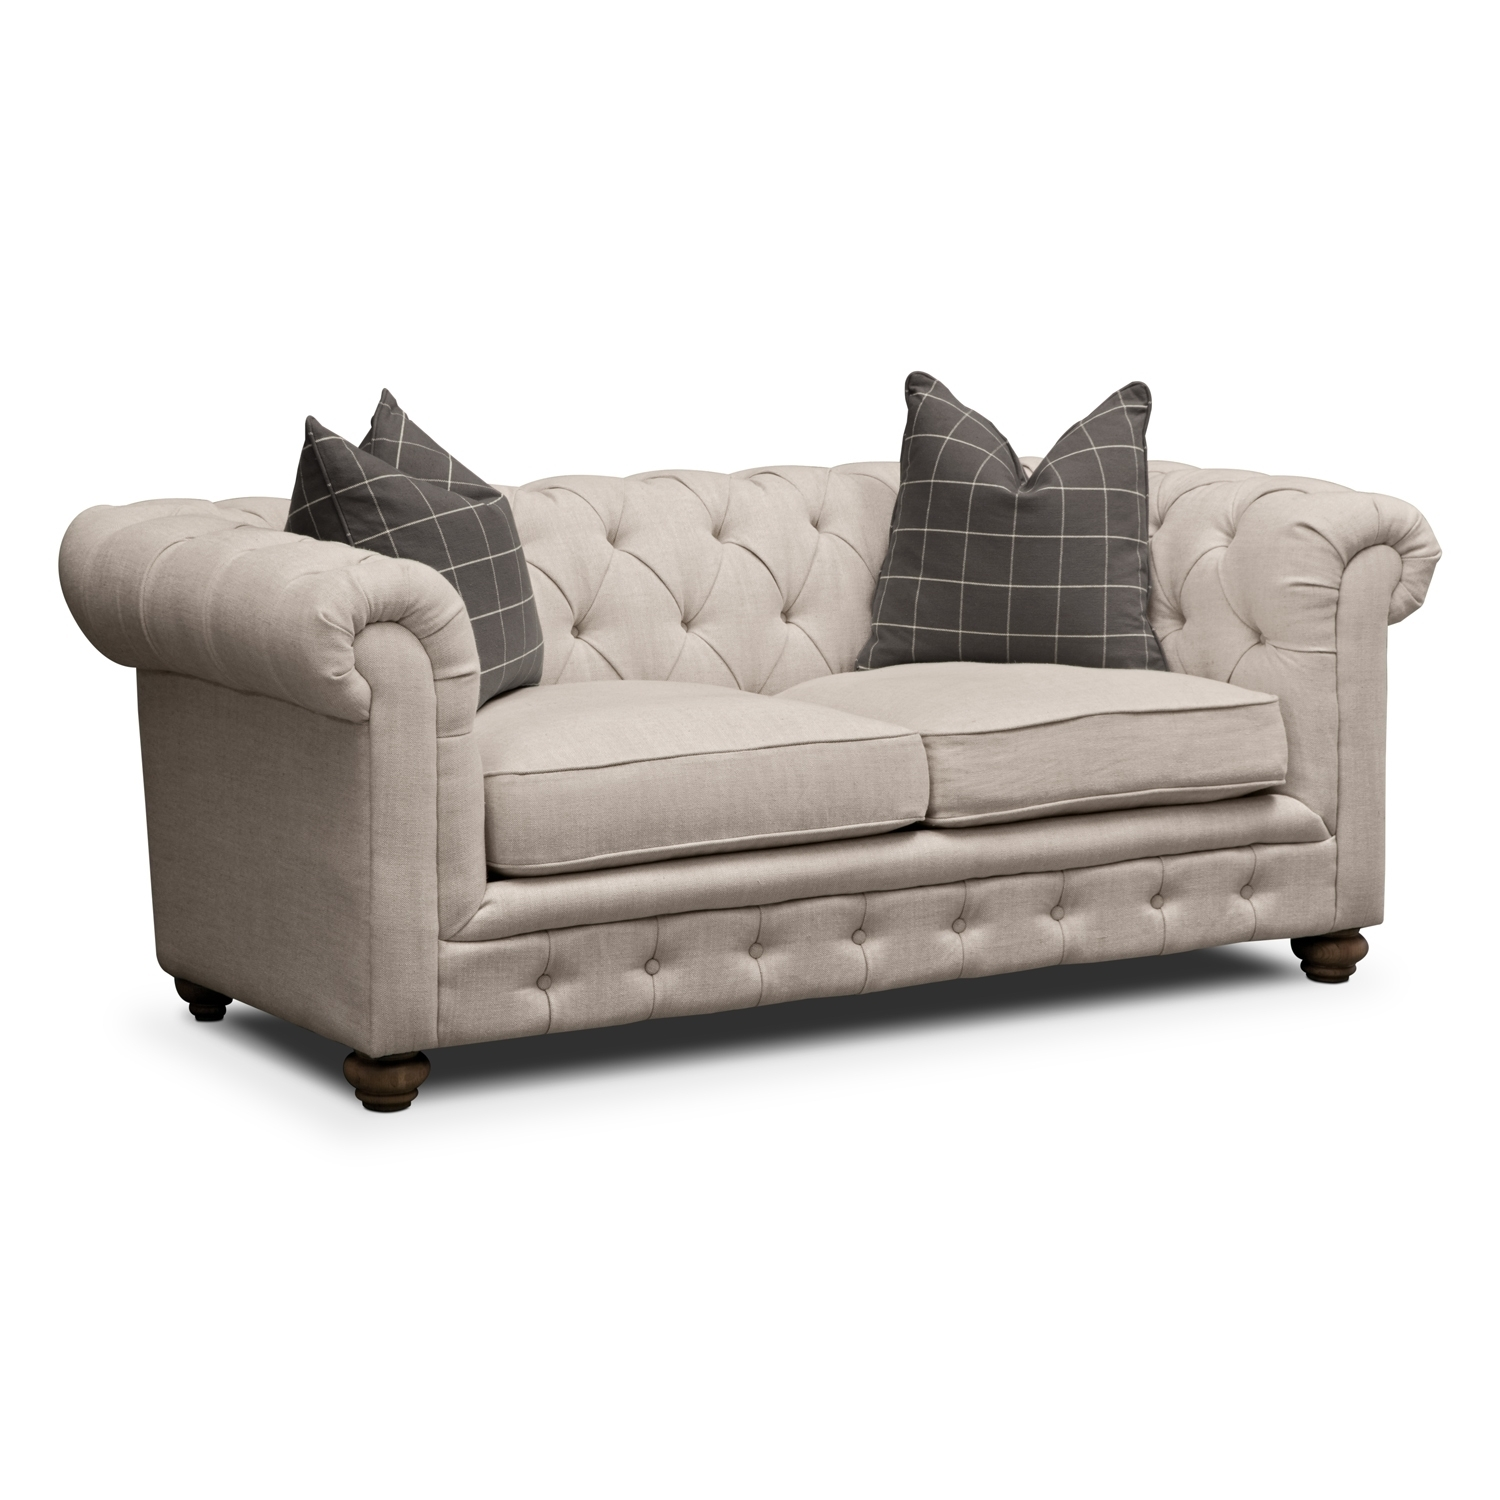 Great Apartment Size Sofas 20 On Modern Sofa Ideas With Apartment Intended For Apartment Size Sofas (View 7 of 10)